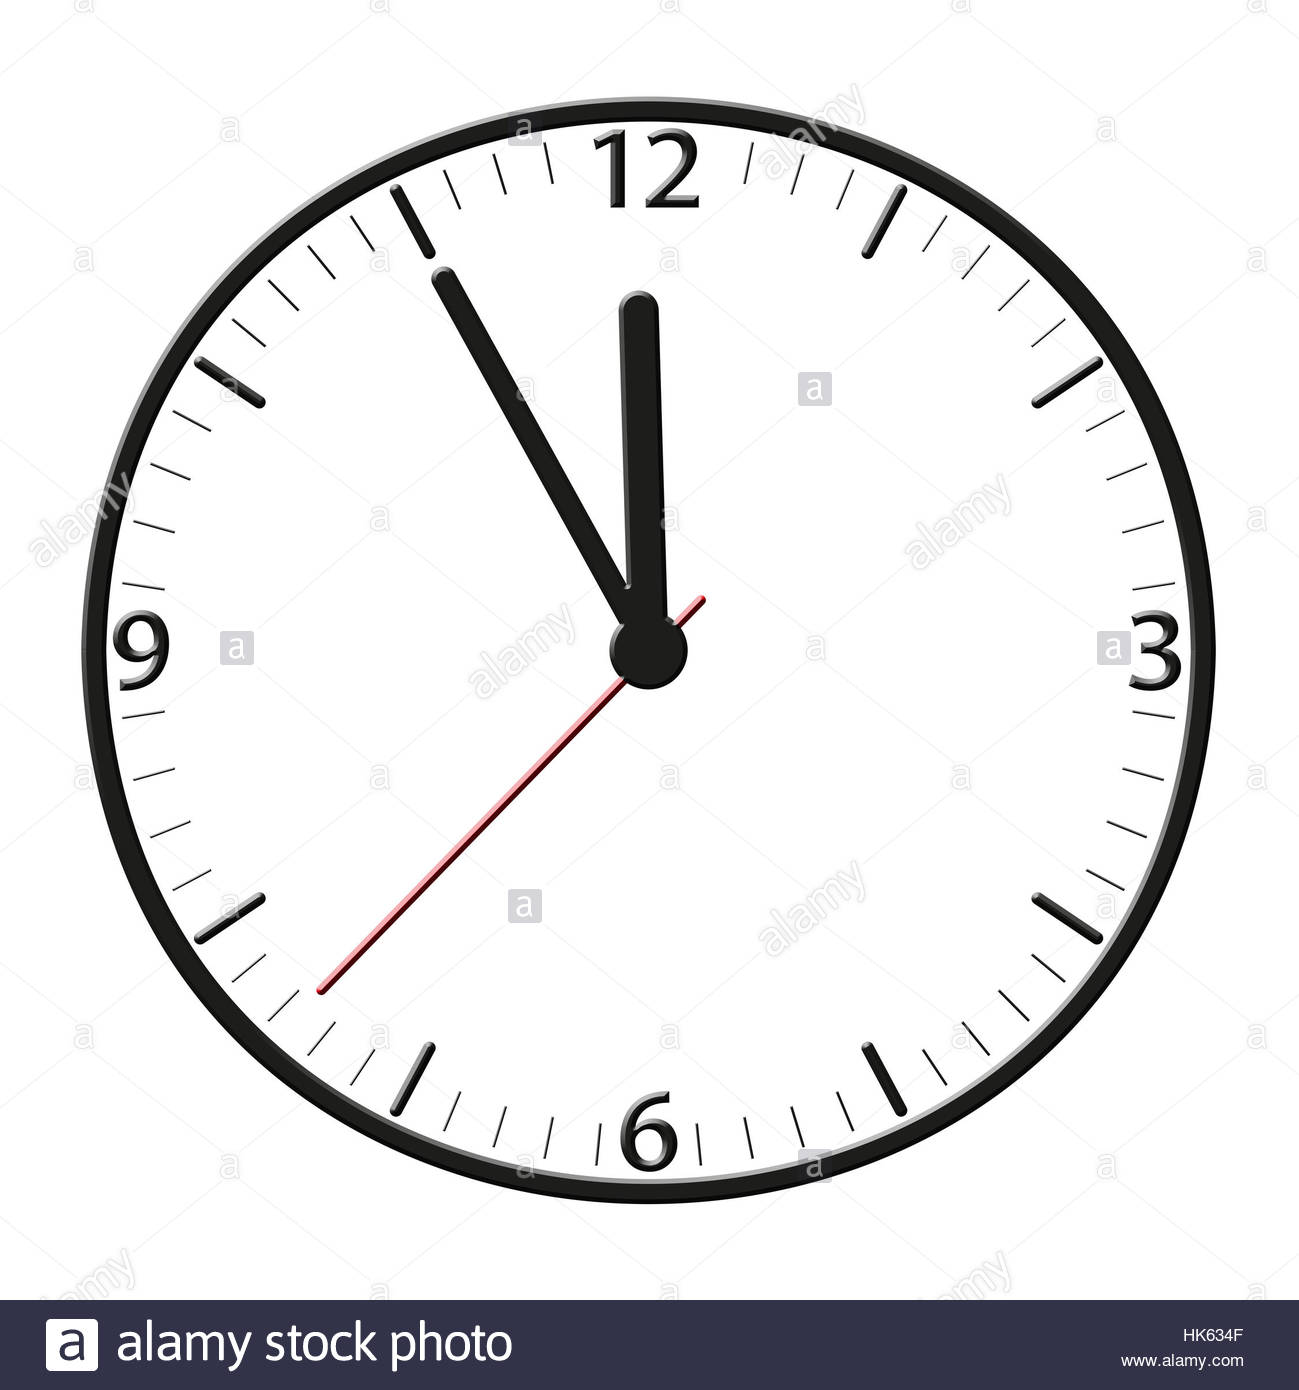 Clock, Date, Time, Time Indication, Seconds, Minutes, Hours, Hour.